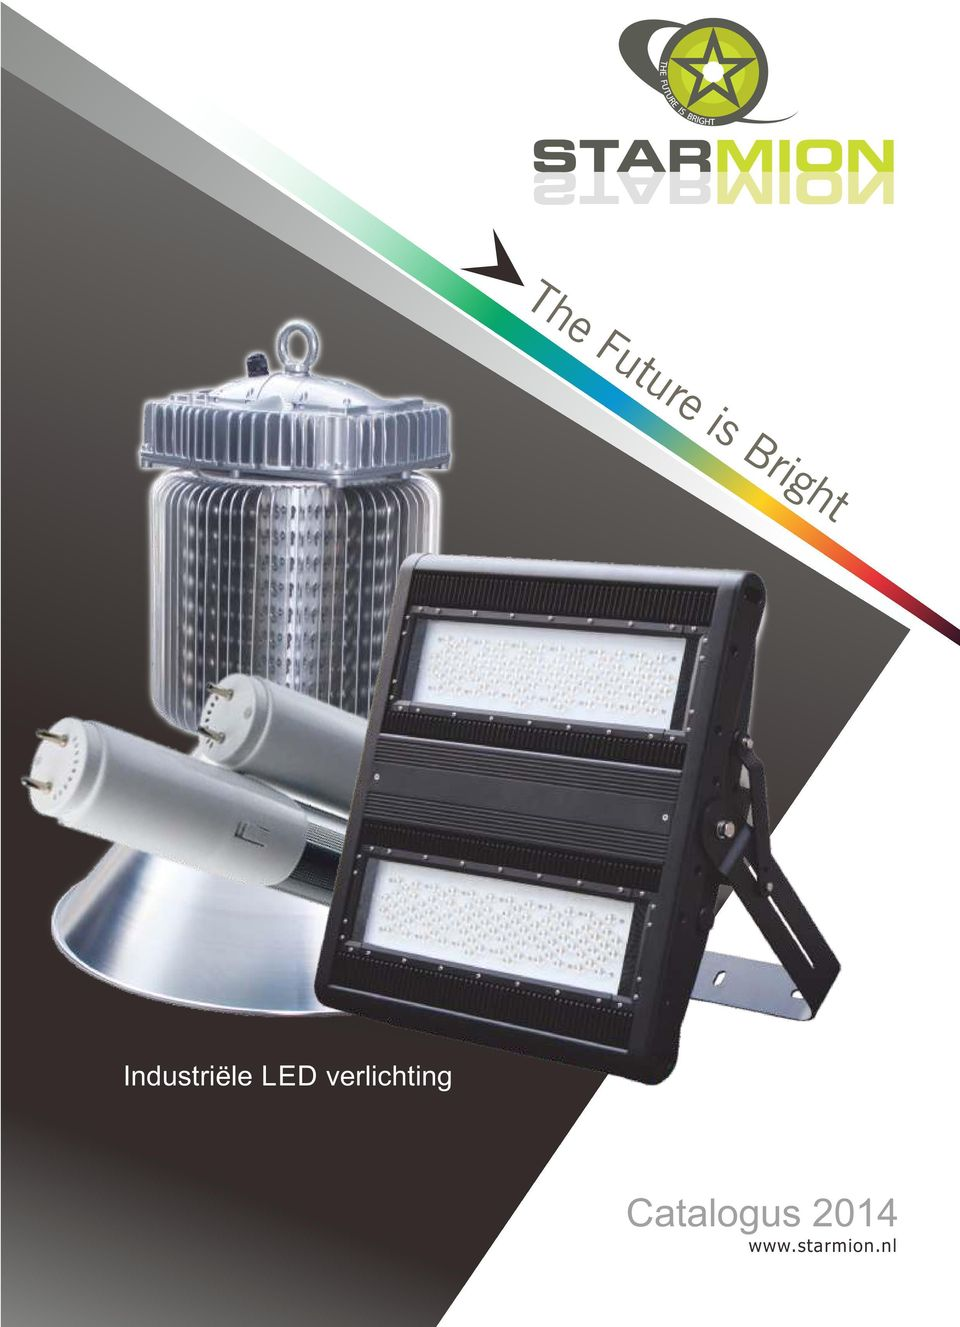 The Future is Bright. Catalogus Industriële LED verlichting. - PDF